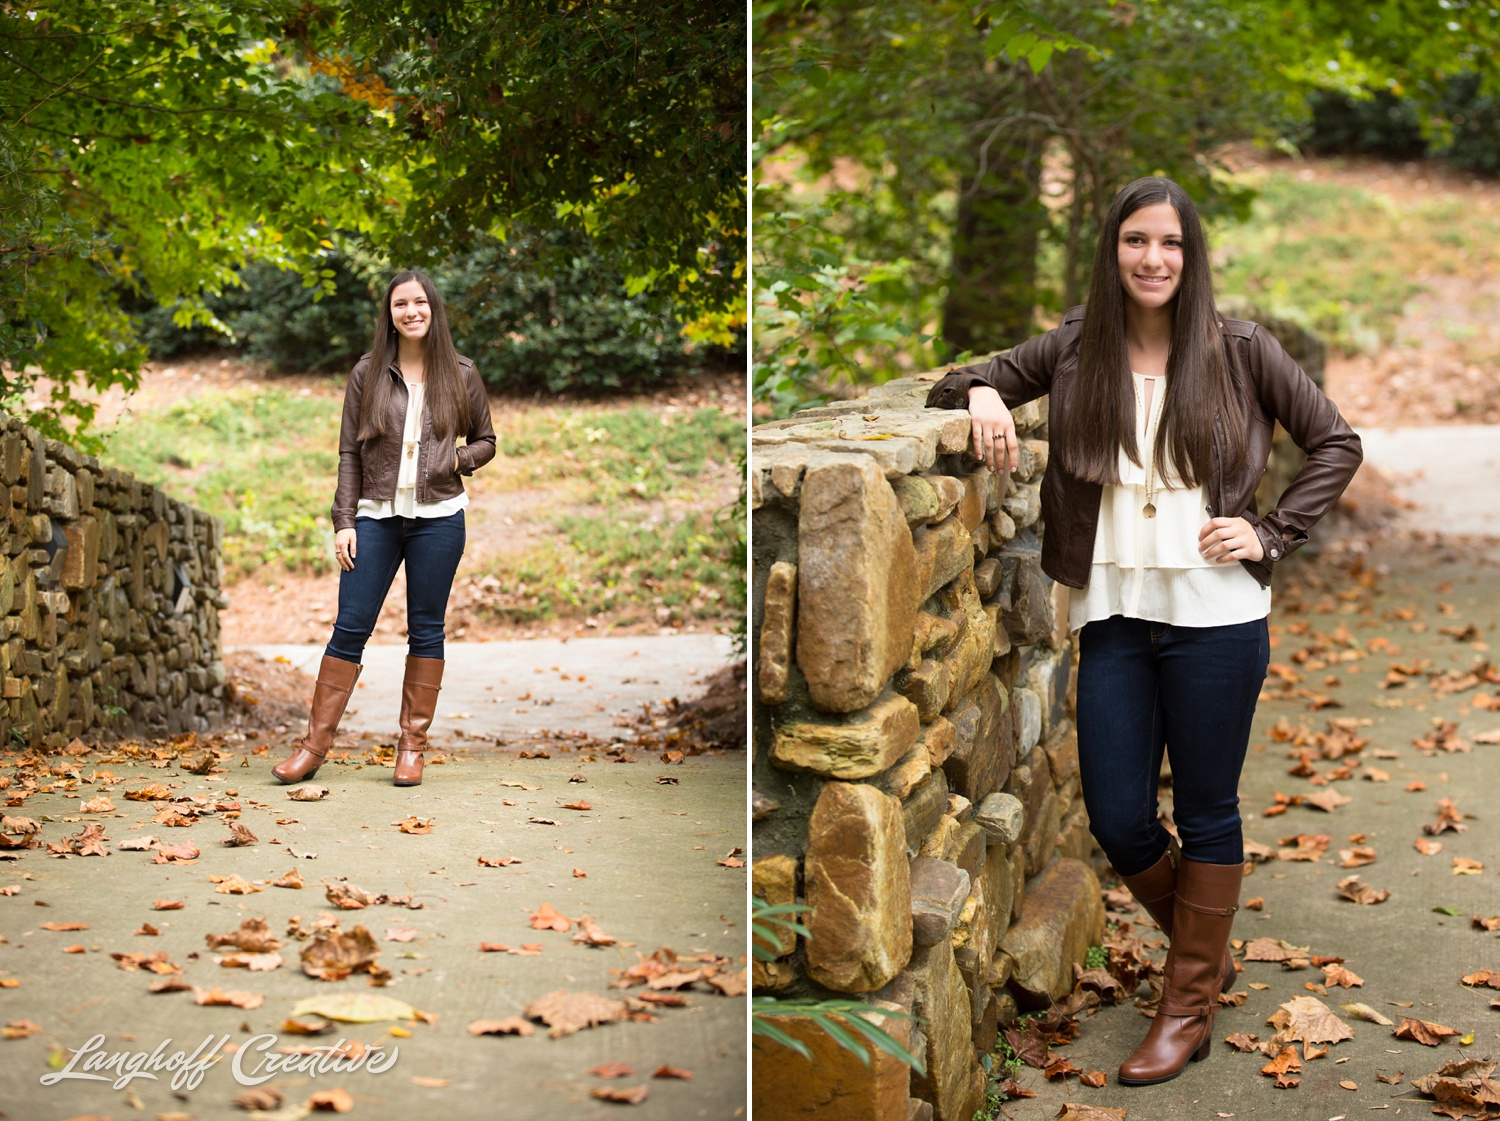 RaleighSeniorPortraits-SeniorSession-Classof2015-Senior2015-HighSchoolSeniorPhotography-LanghoffCreative-Alexa2-photo.jpg